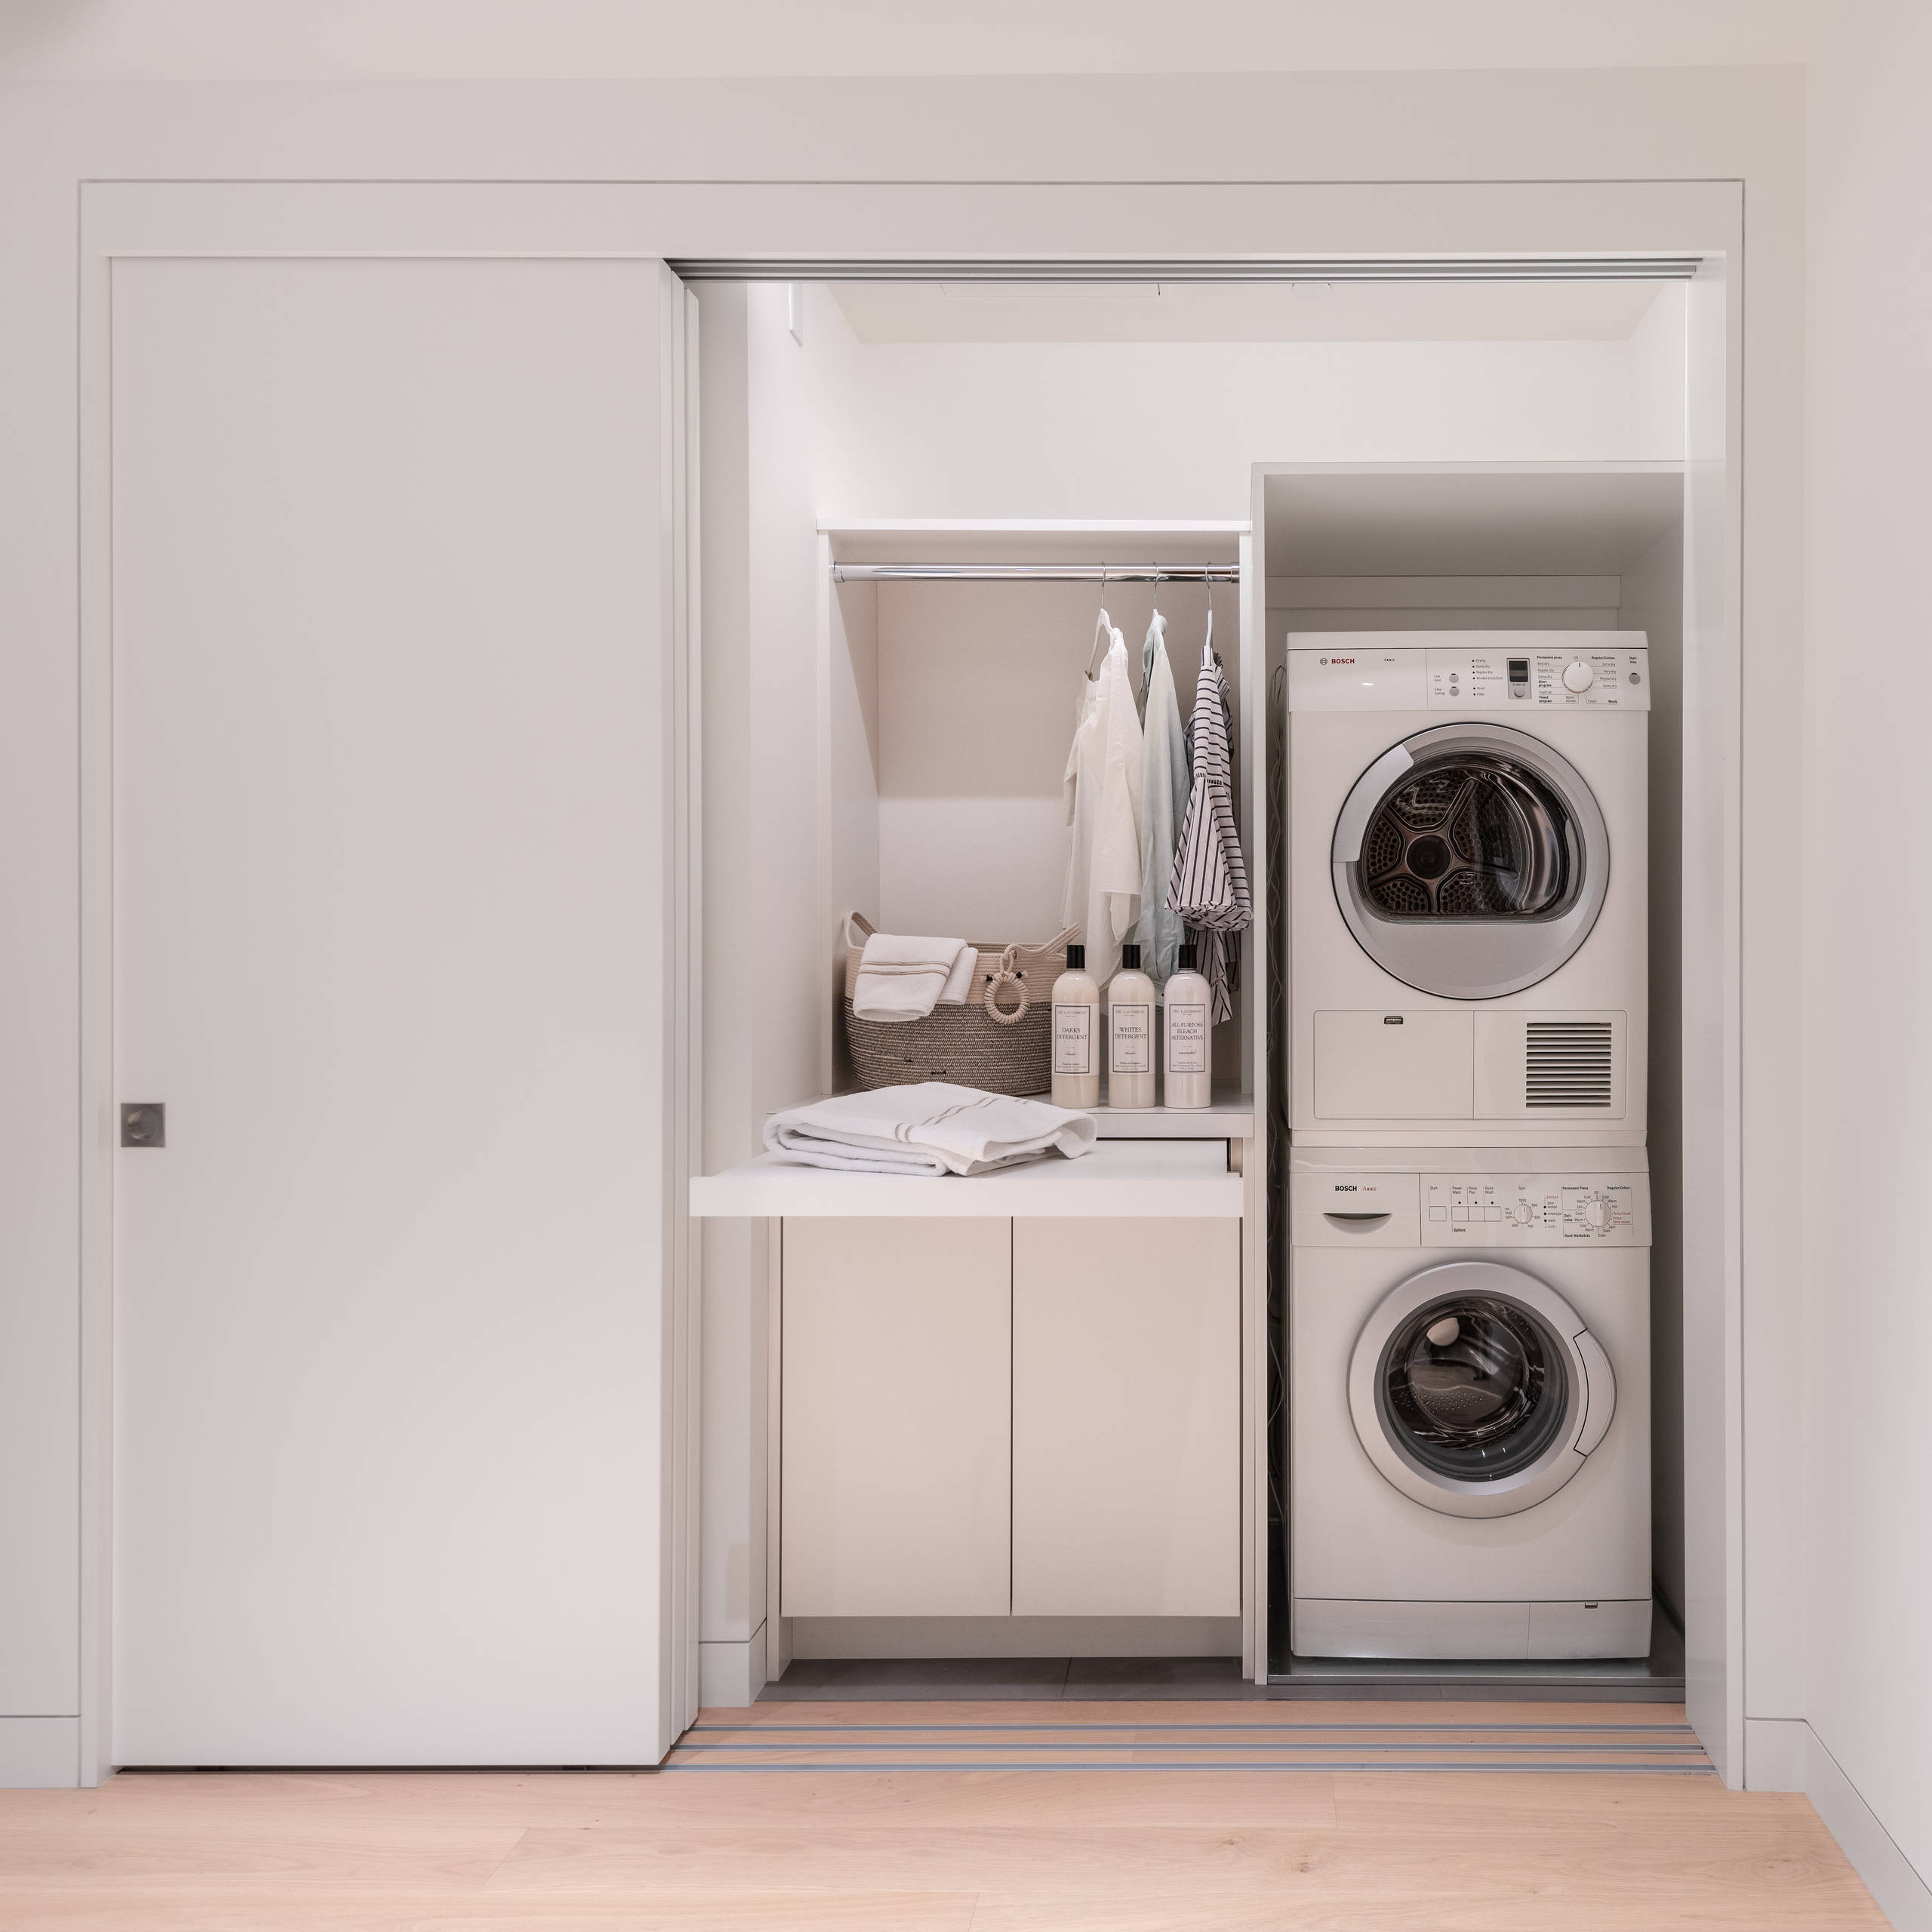 75 Beautiful Small Laundry Room With A Stacked Washer Dryer Pictures Ideas February 2021 Houzz